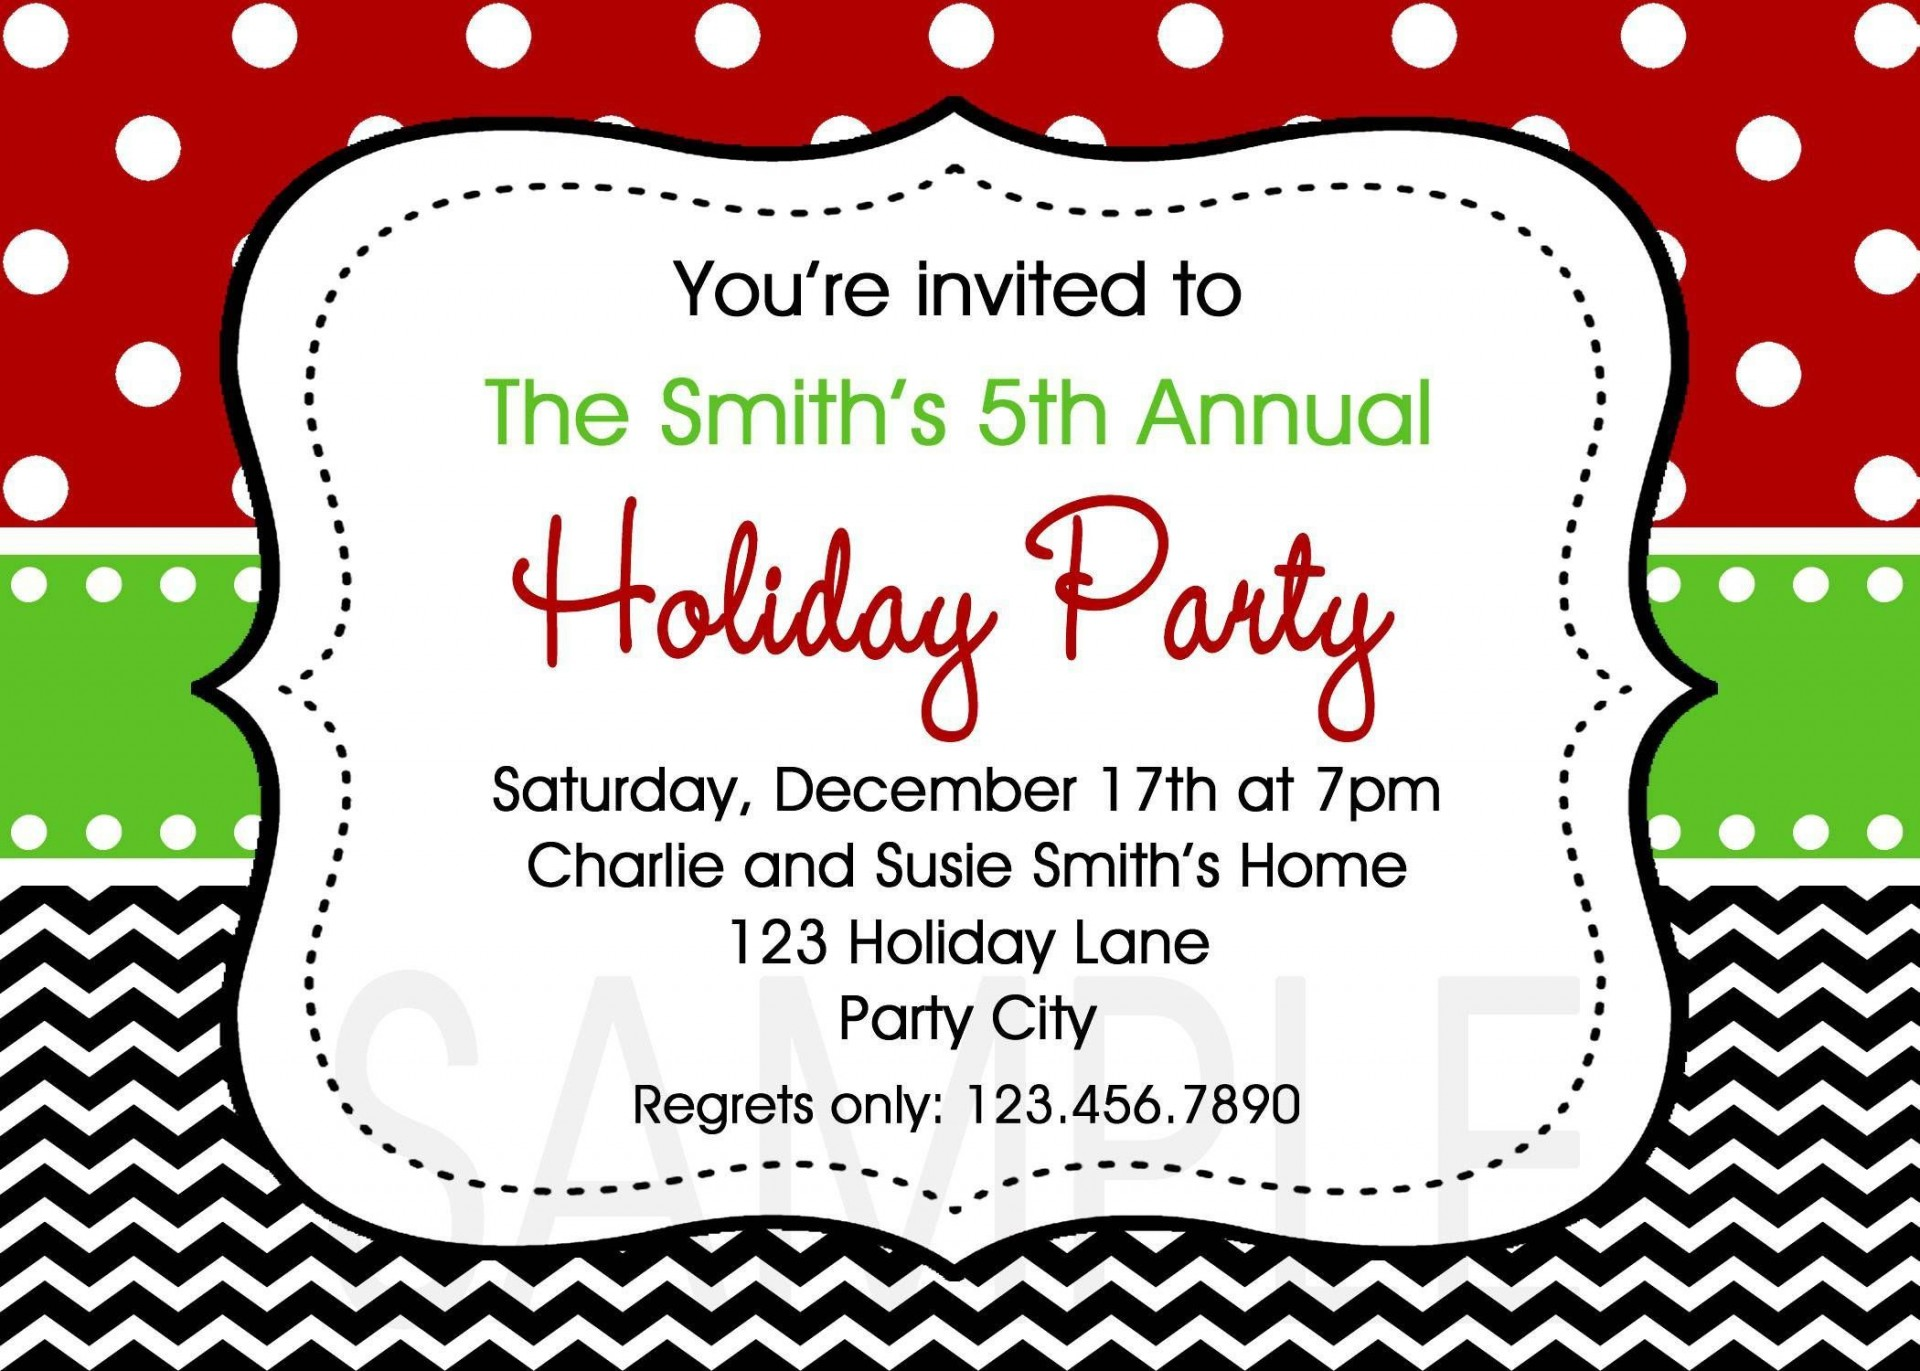 003 Stirring Free Holiday Party Invitation Template For Word Picture 1920